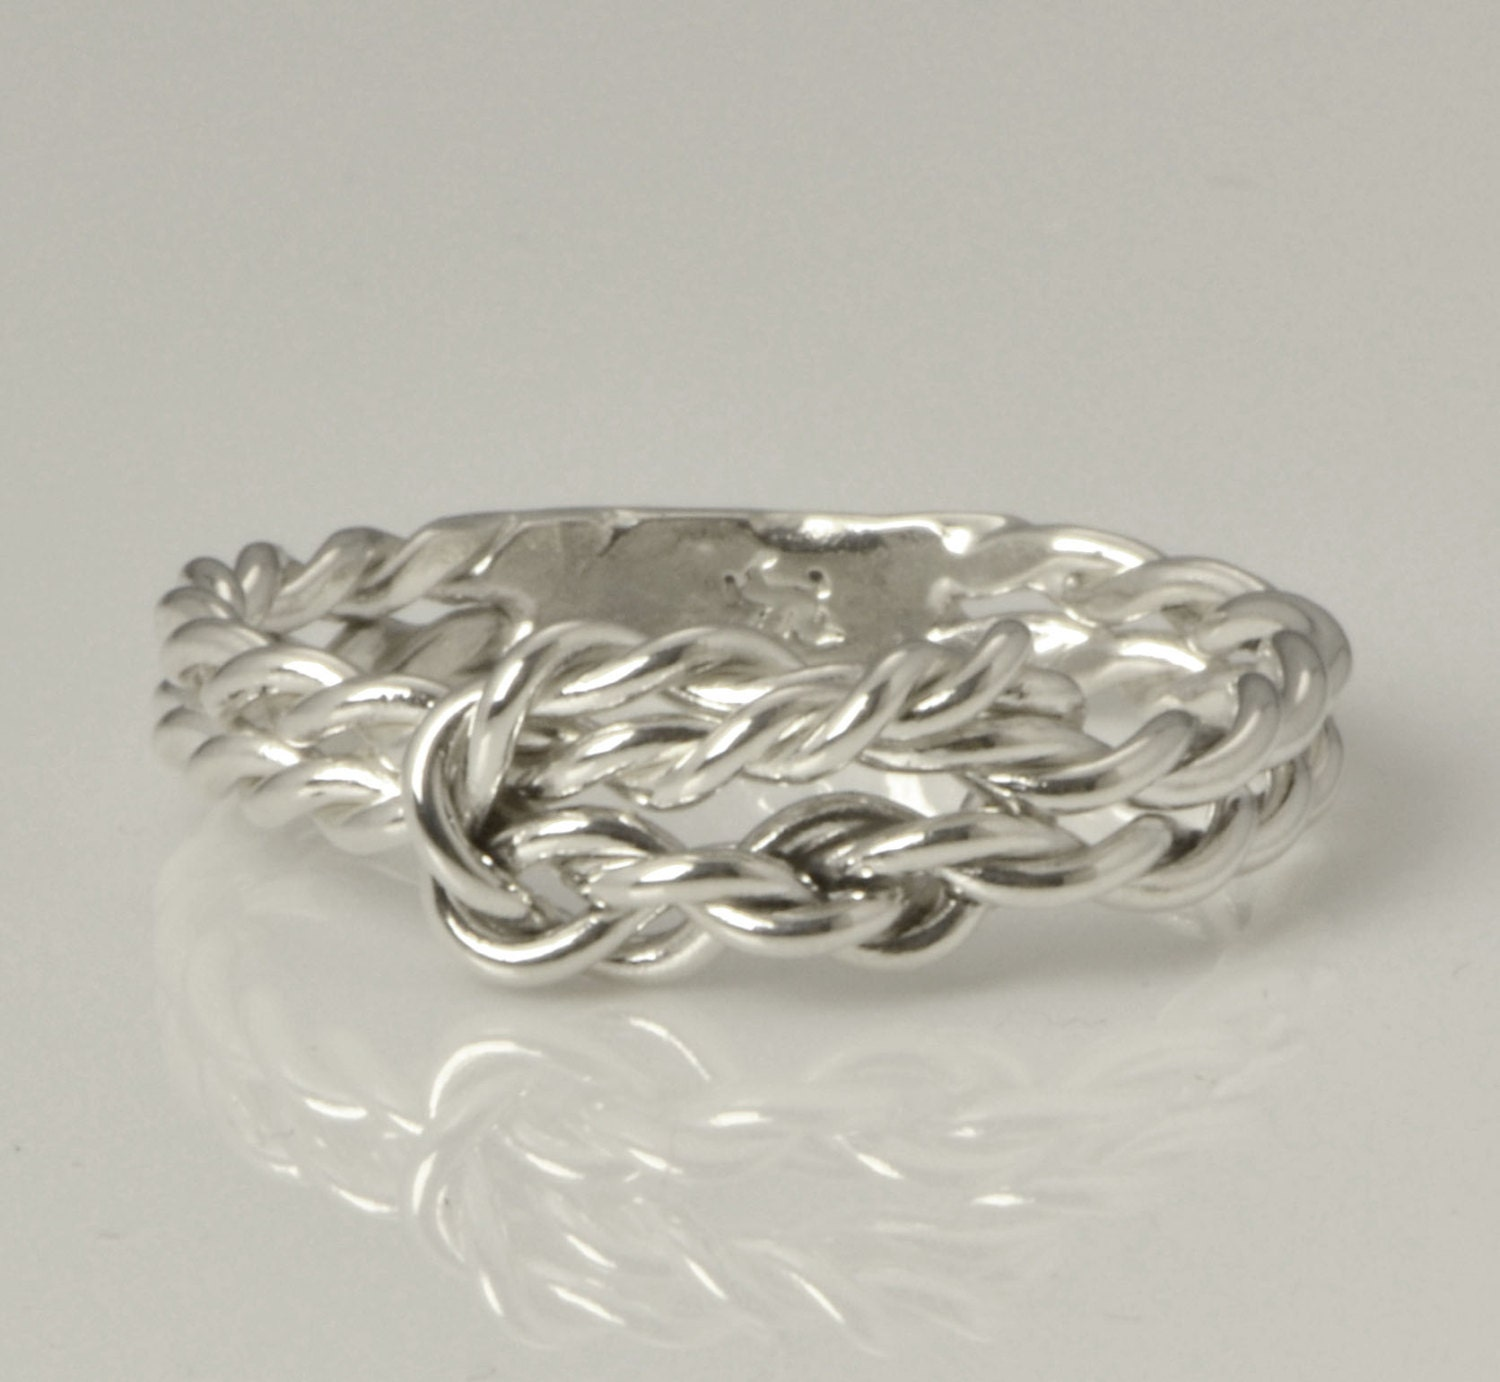 infinity knot ring promise ring thumb ring love knot